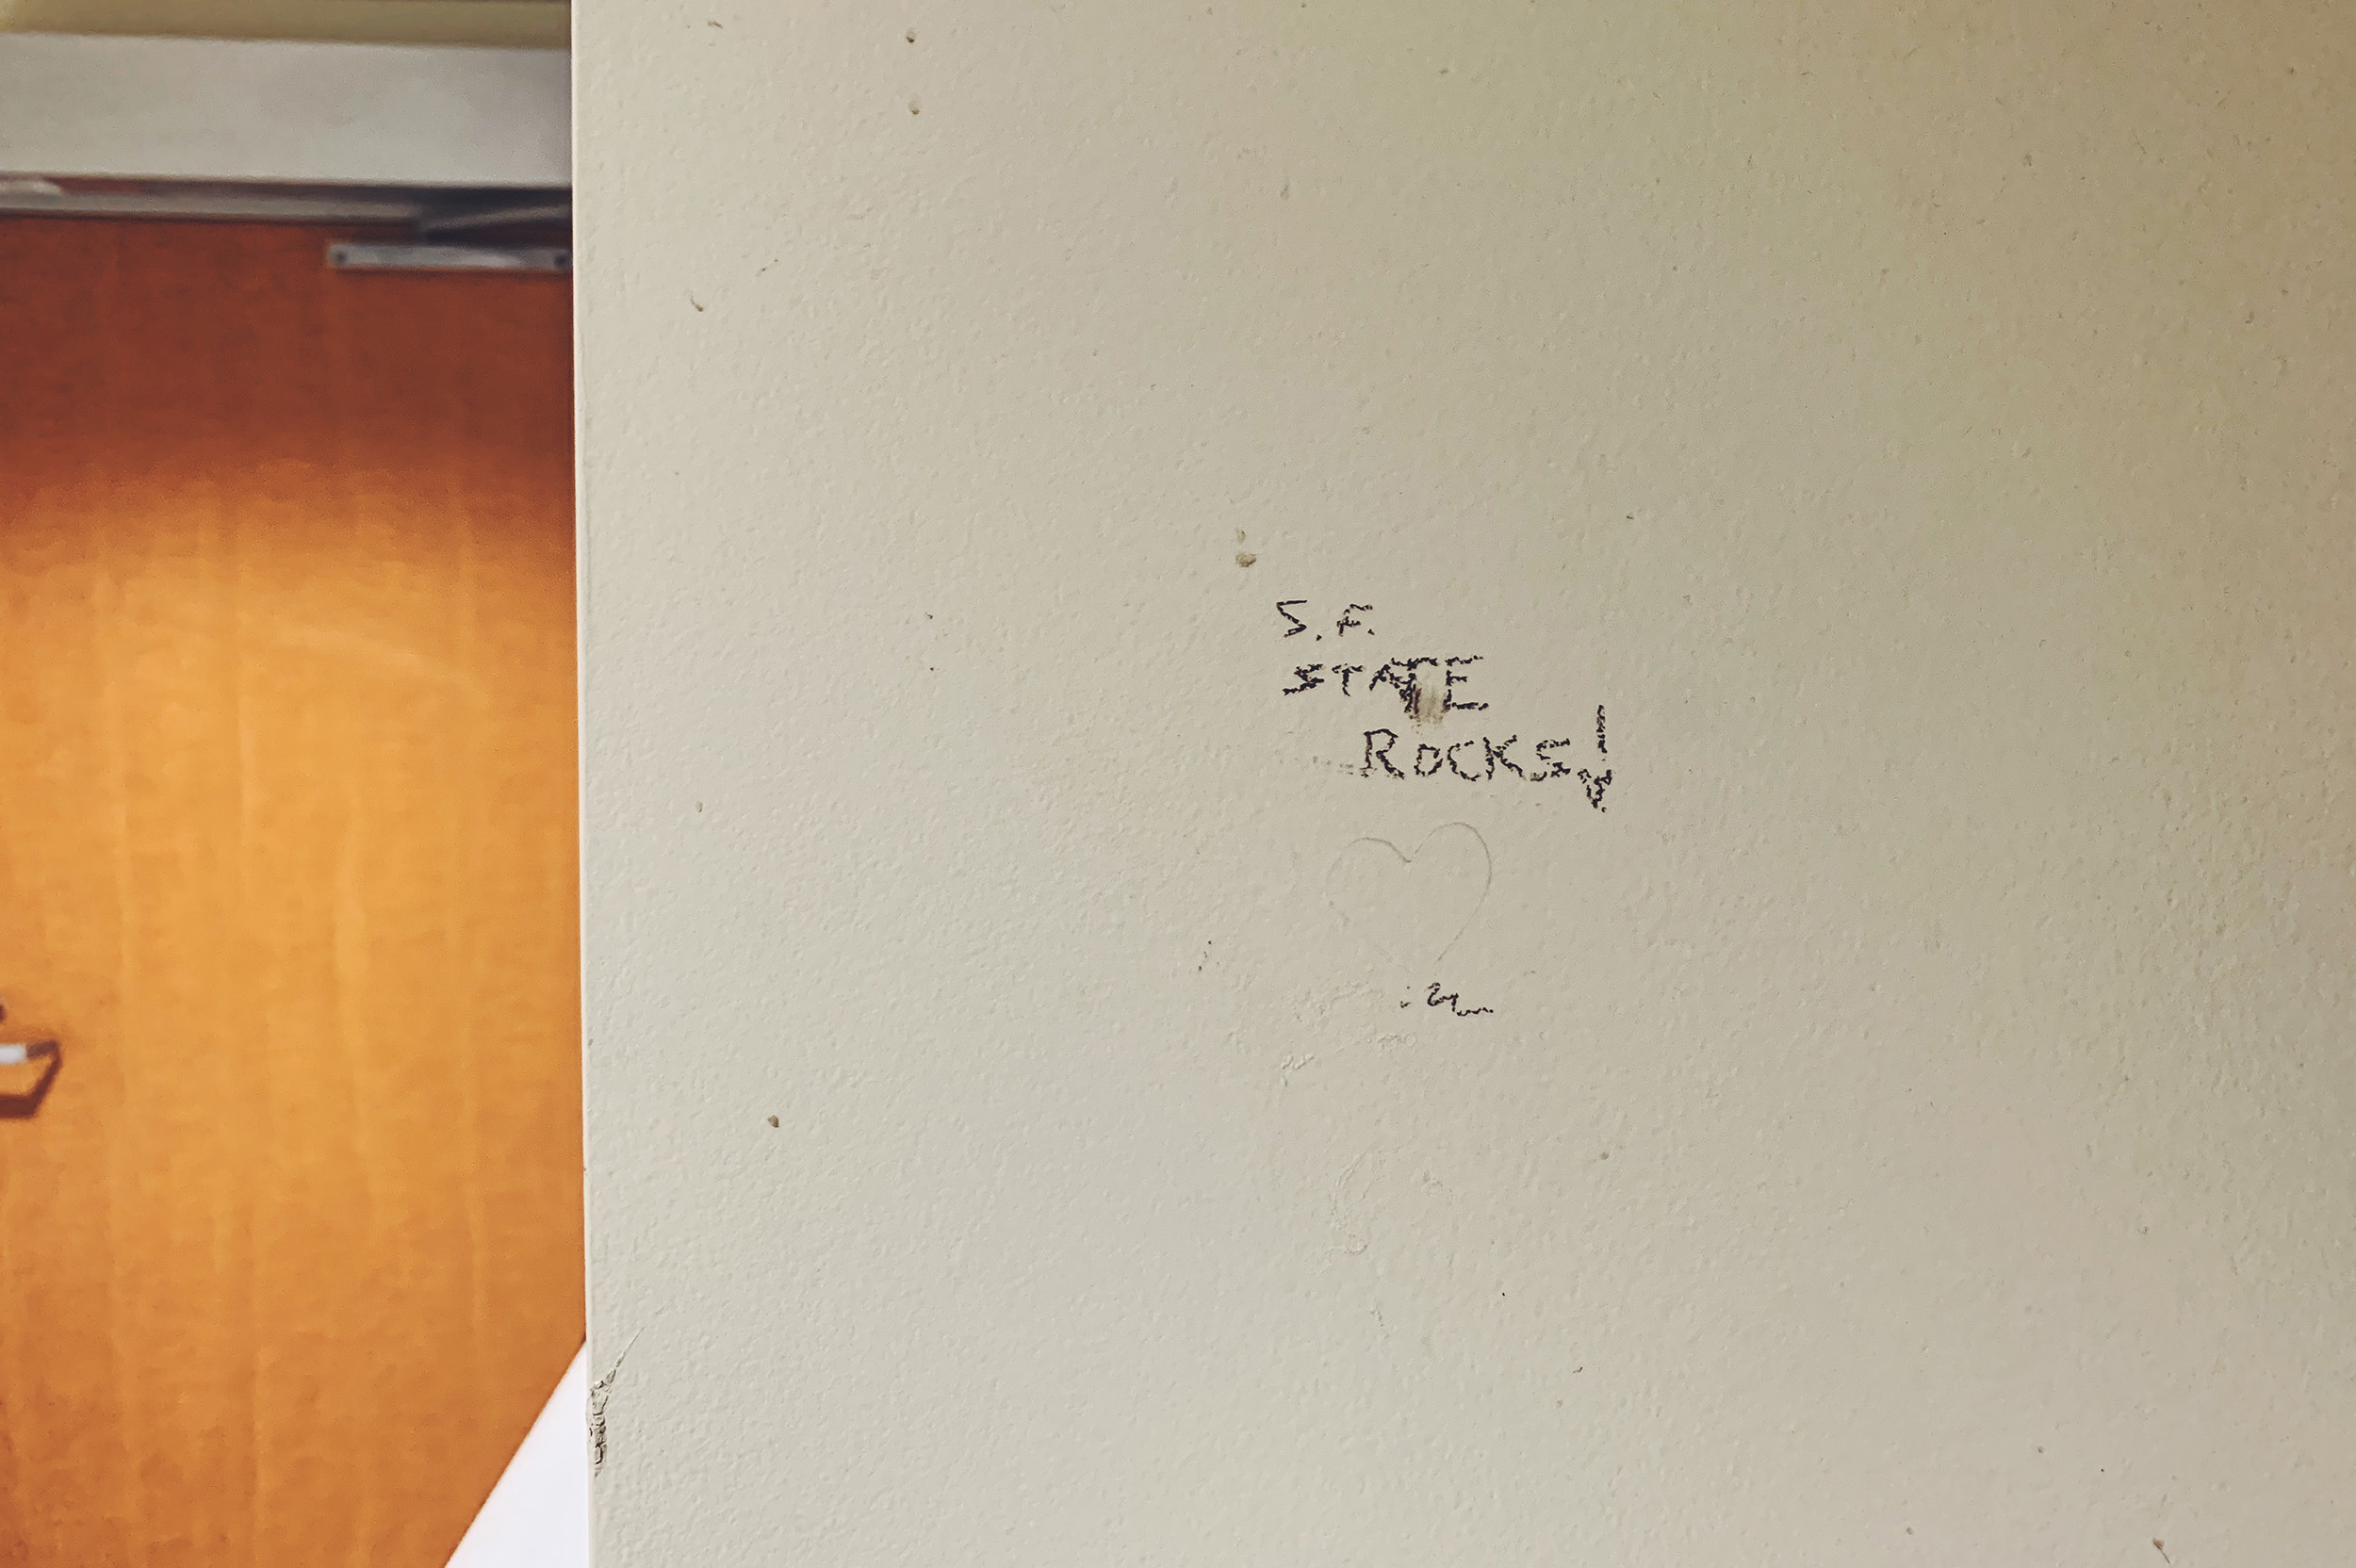 Indeed it does, writing-on-the-bathroom-wall guy.